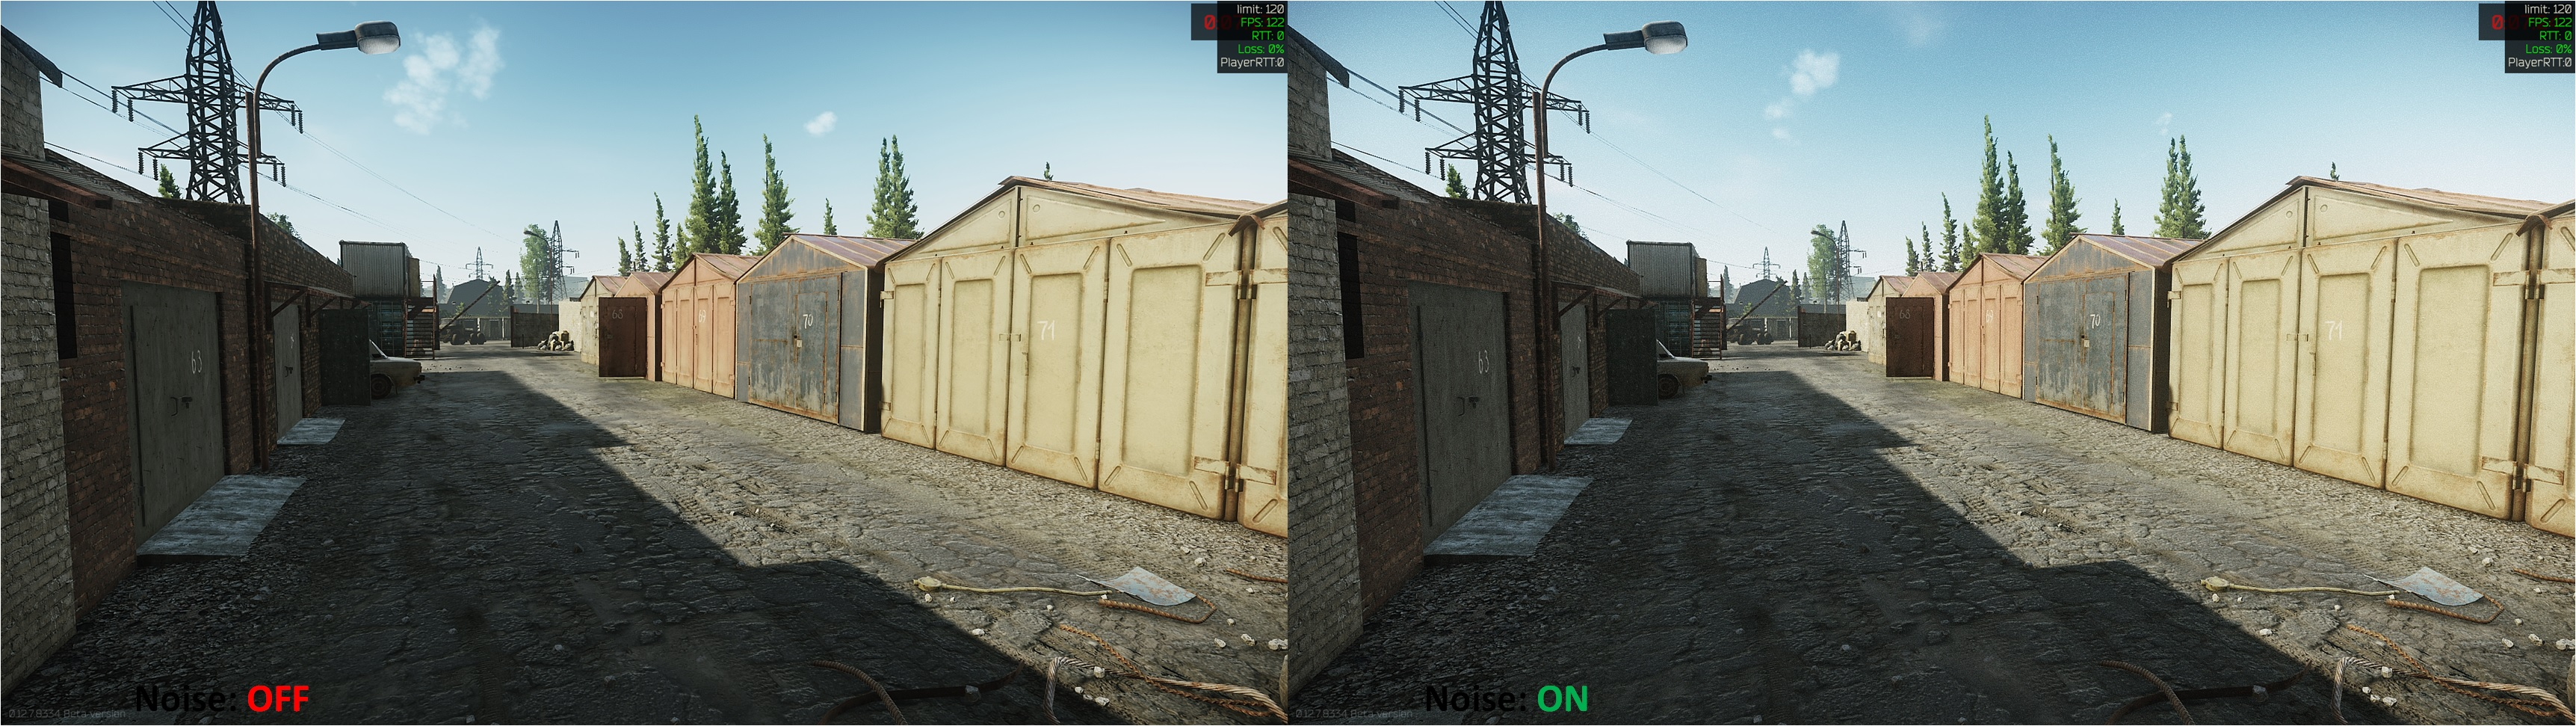 Tarkov Noise Comparison